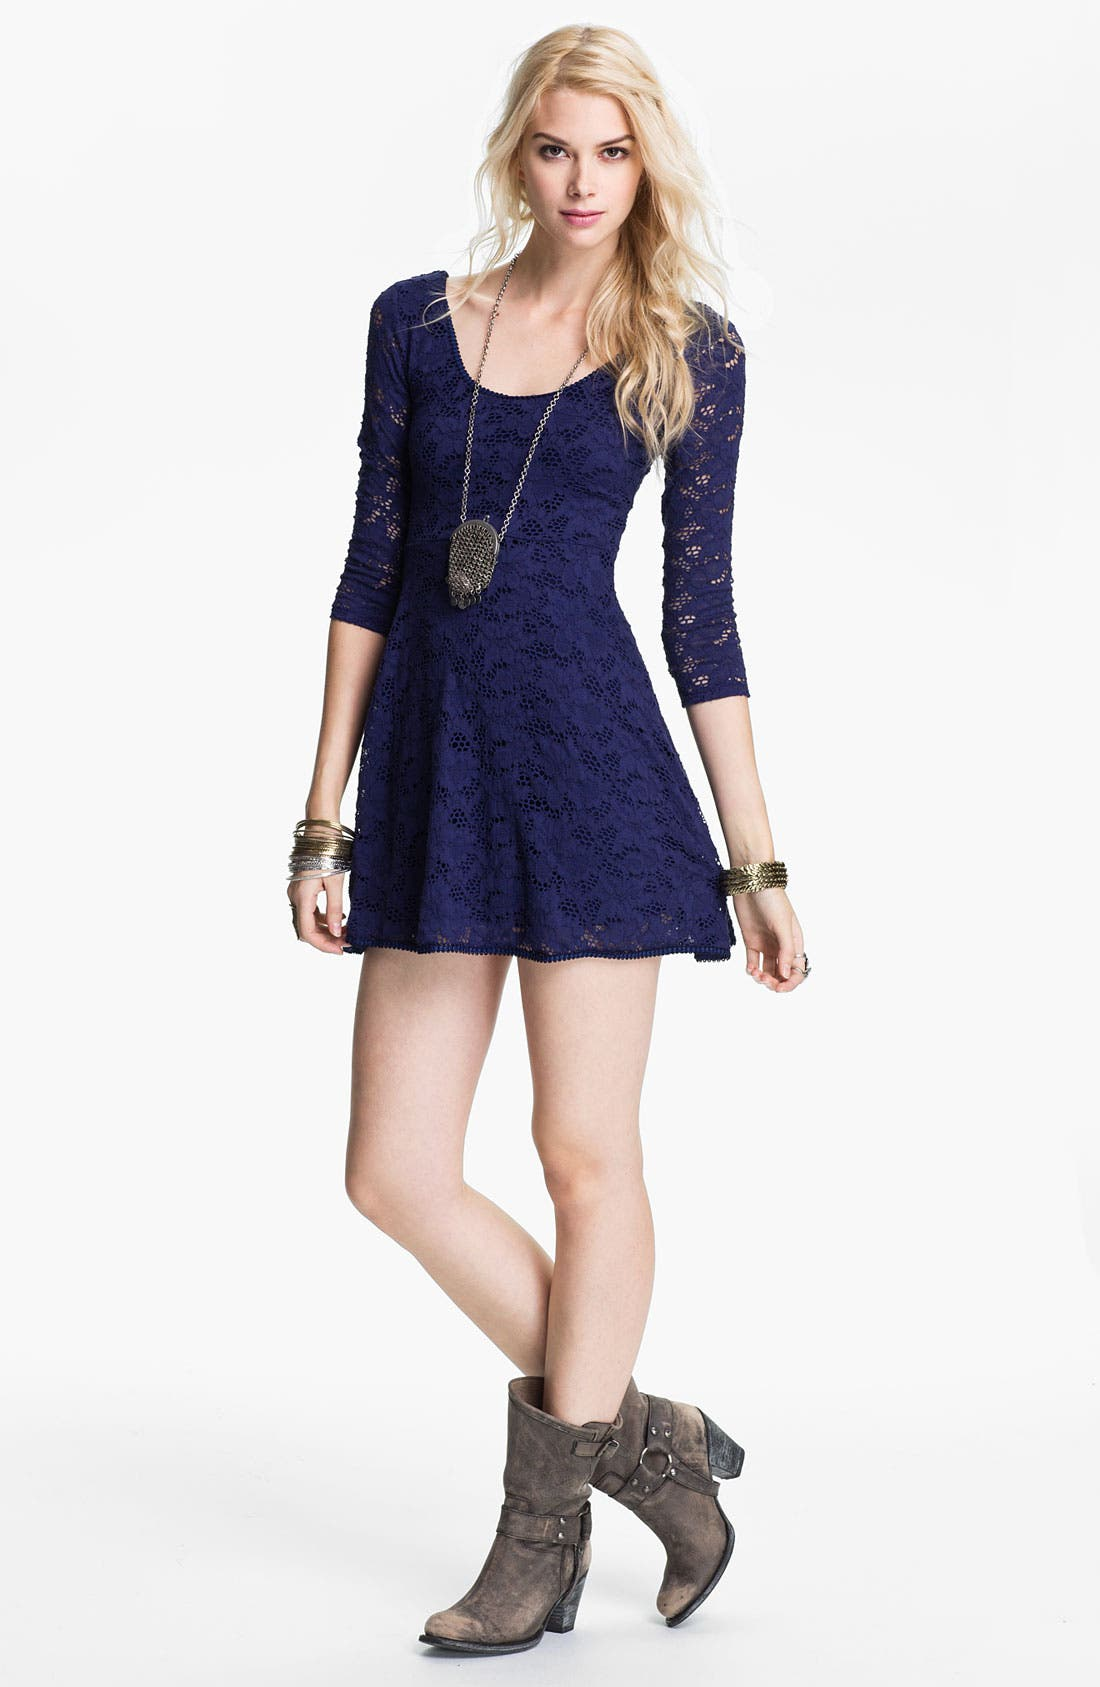 Alternate Image 1 Selected - Free People Lace Minidress